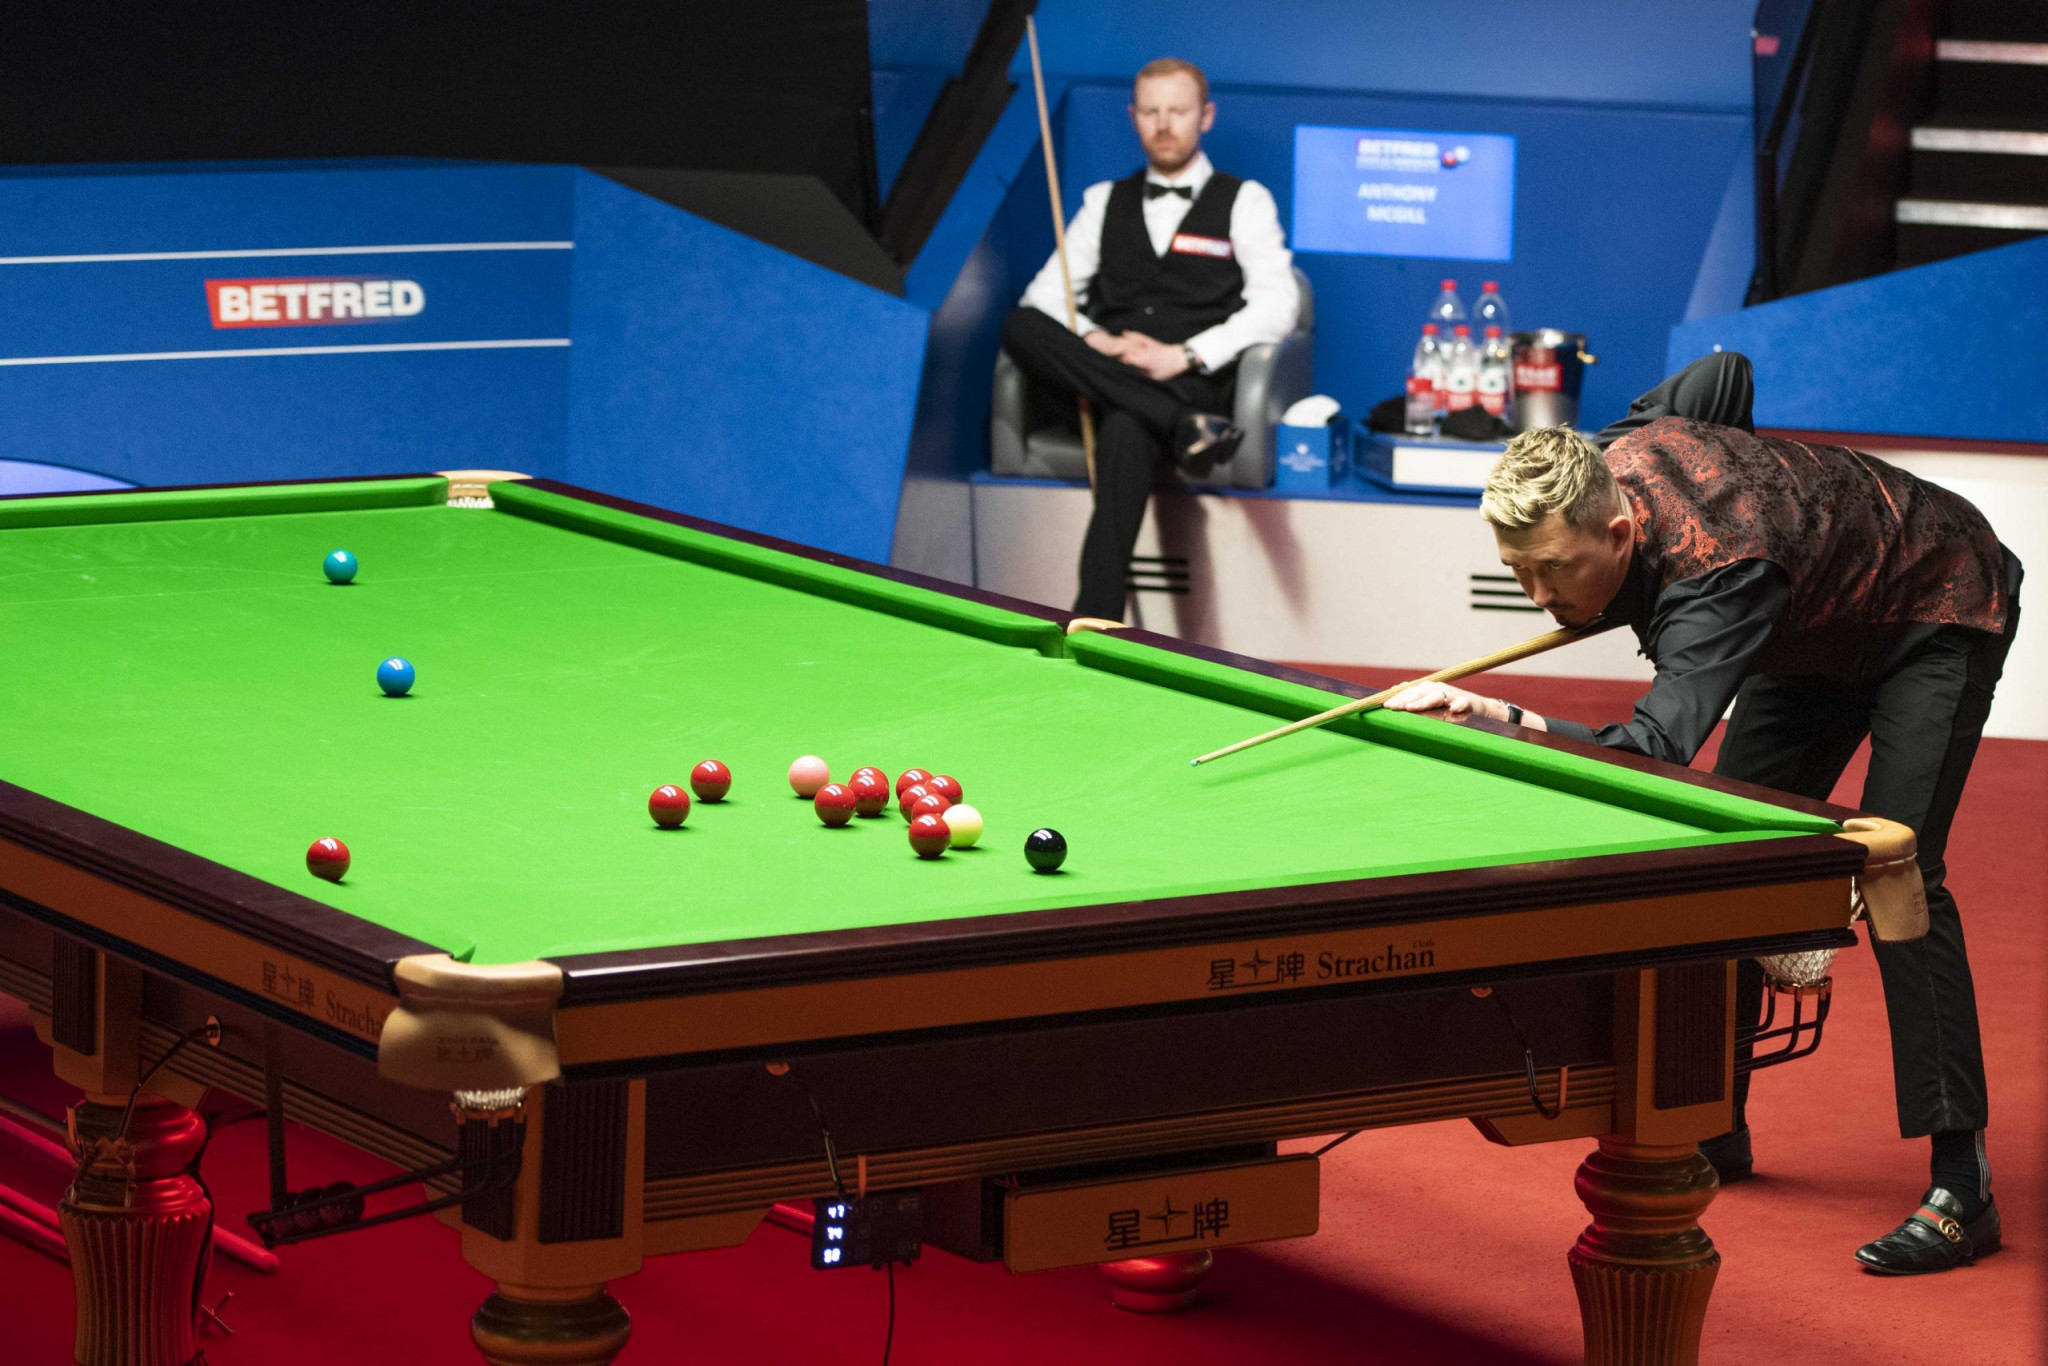 There will be an all-English final at the World Snooker Championship in Sheffield after Kyren Wilson defeated Scotland's Anthony McGill in the semi-final ©World Snooker